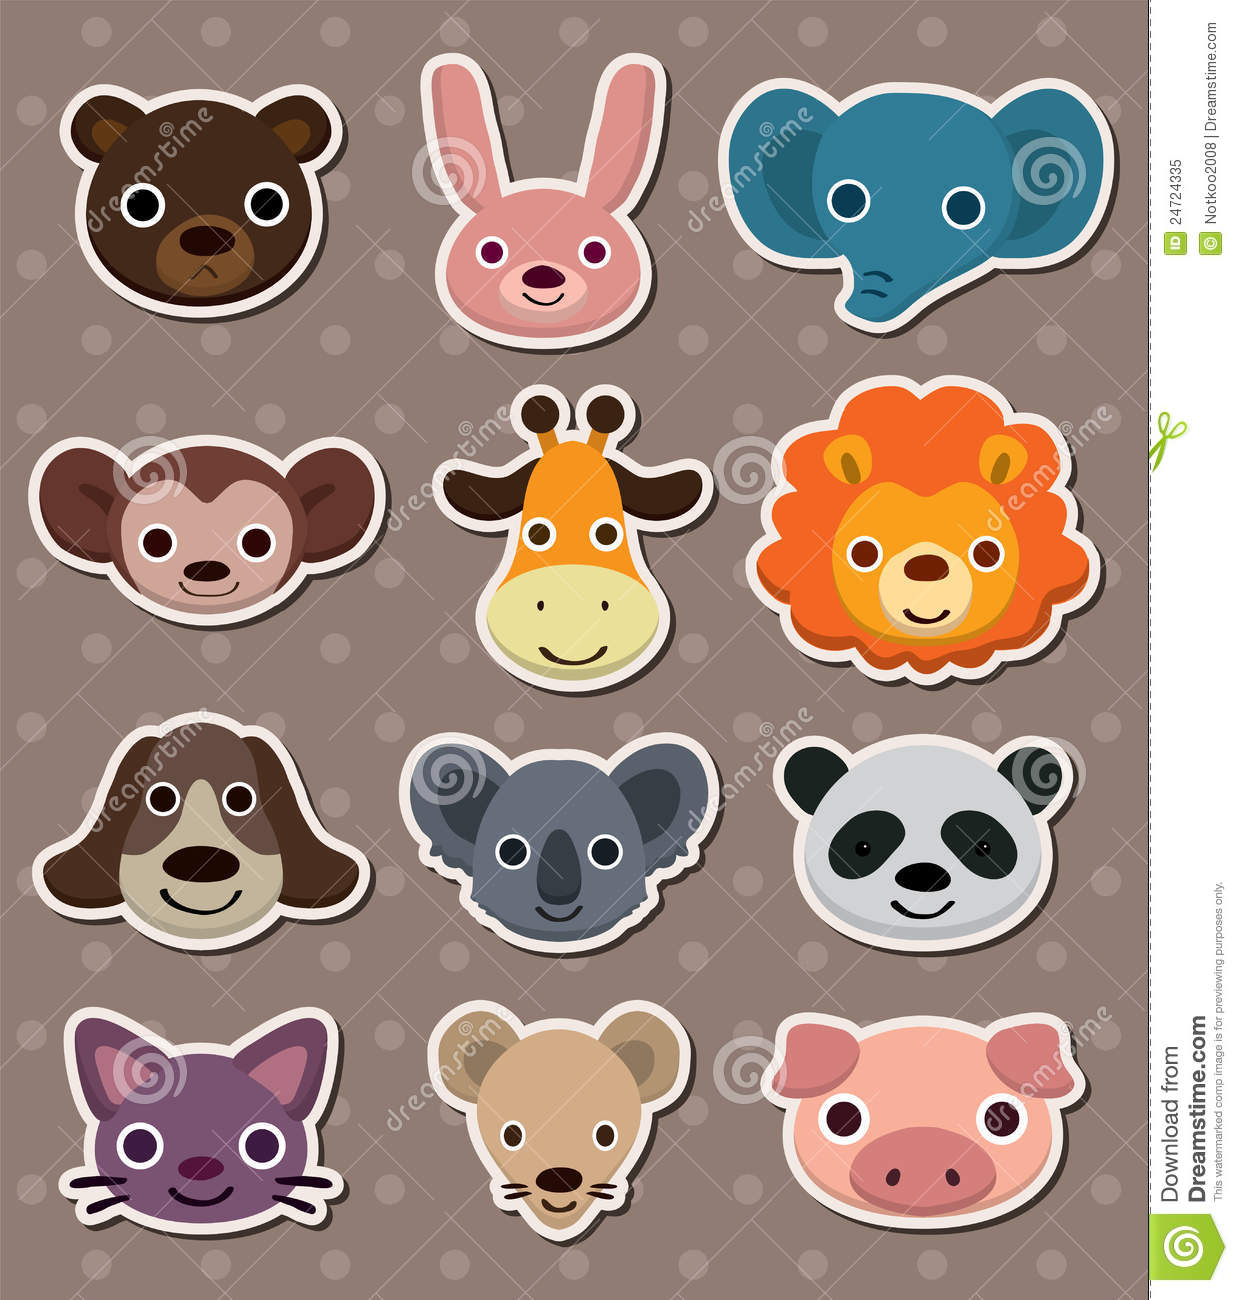 Animal Face Stickers Royalty Free Stock Photo Image